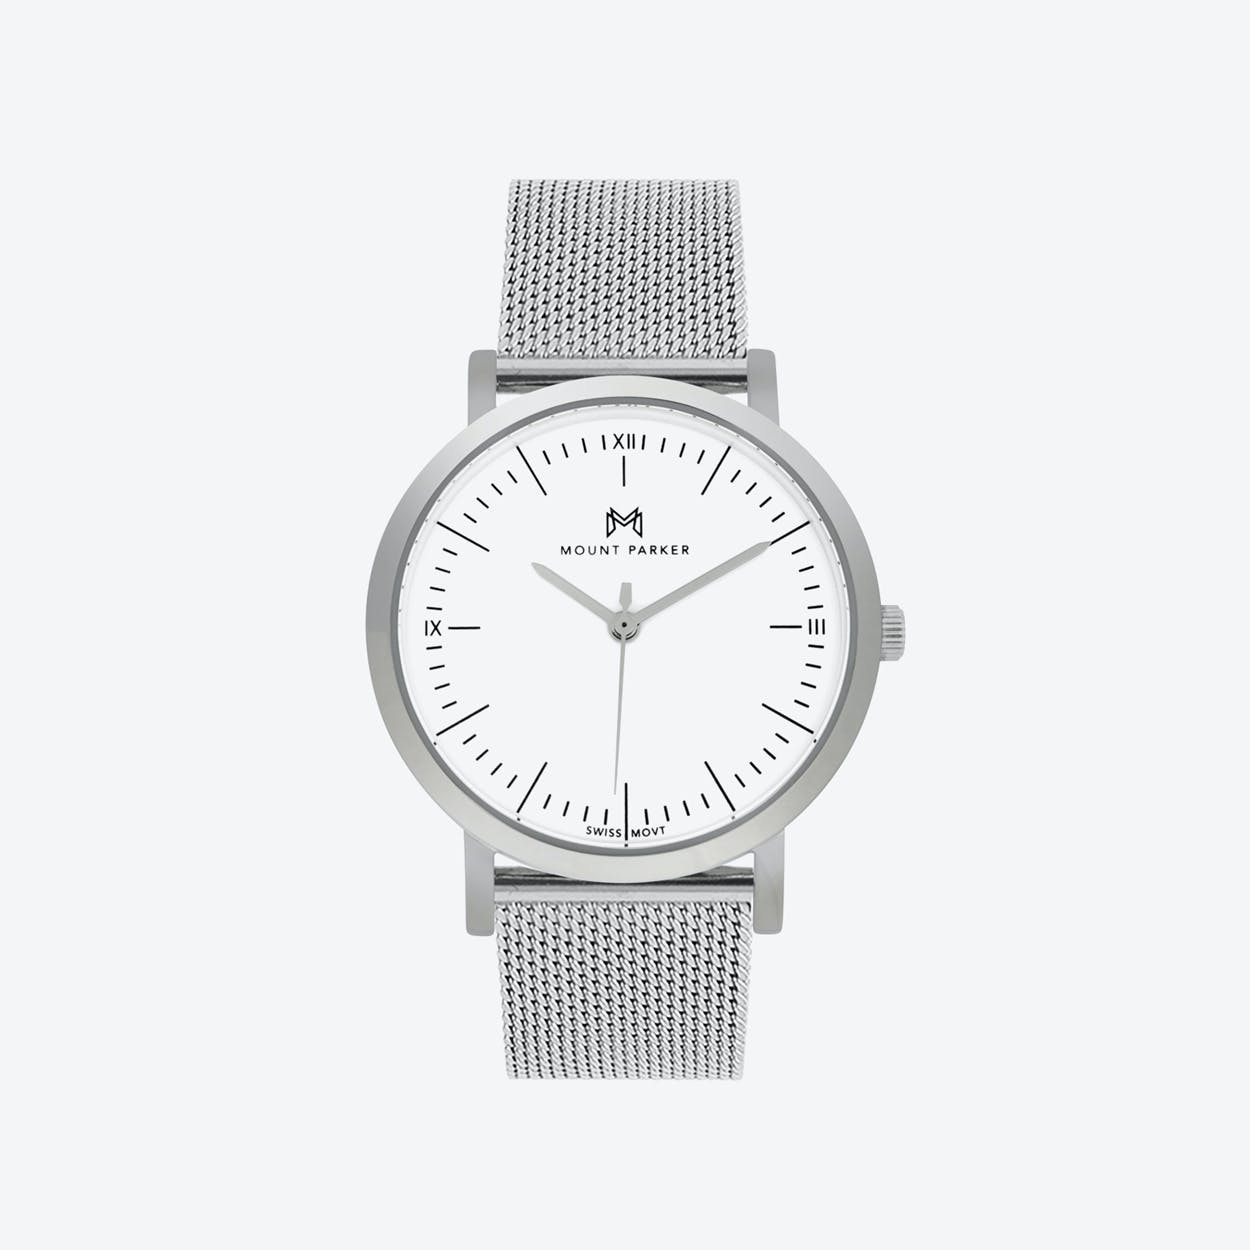 ODYSSEY Watch Glacier Silver and Silver Mesh Strap, 36mm